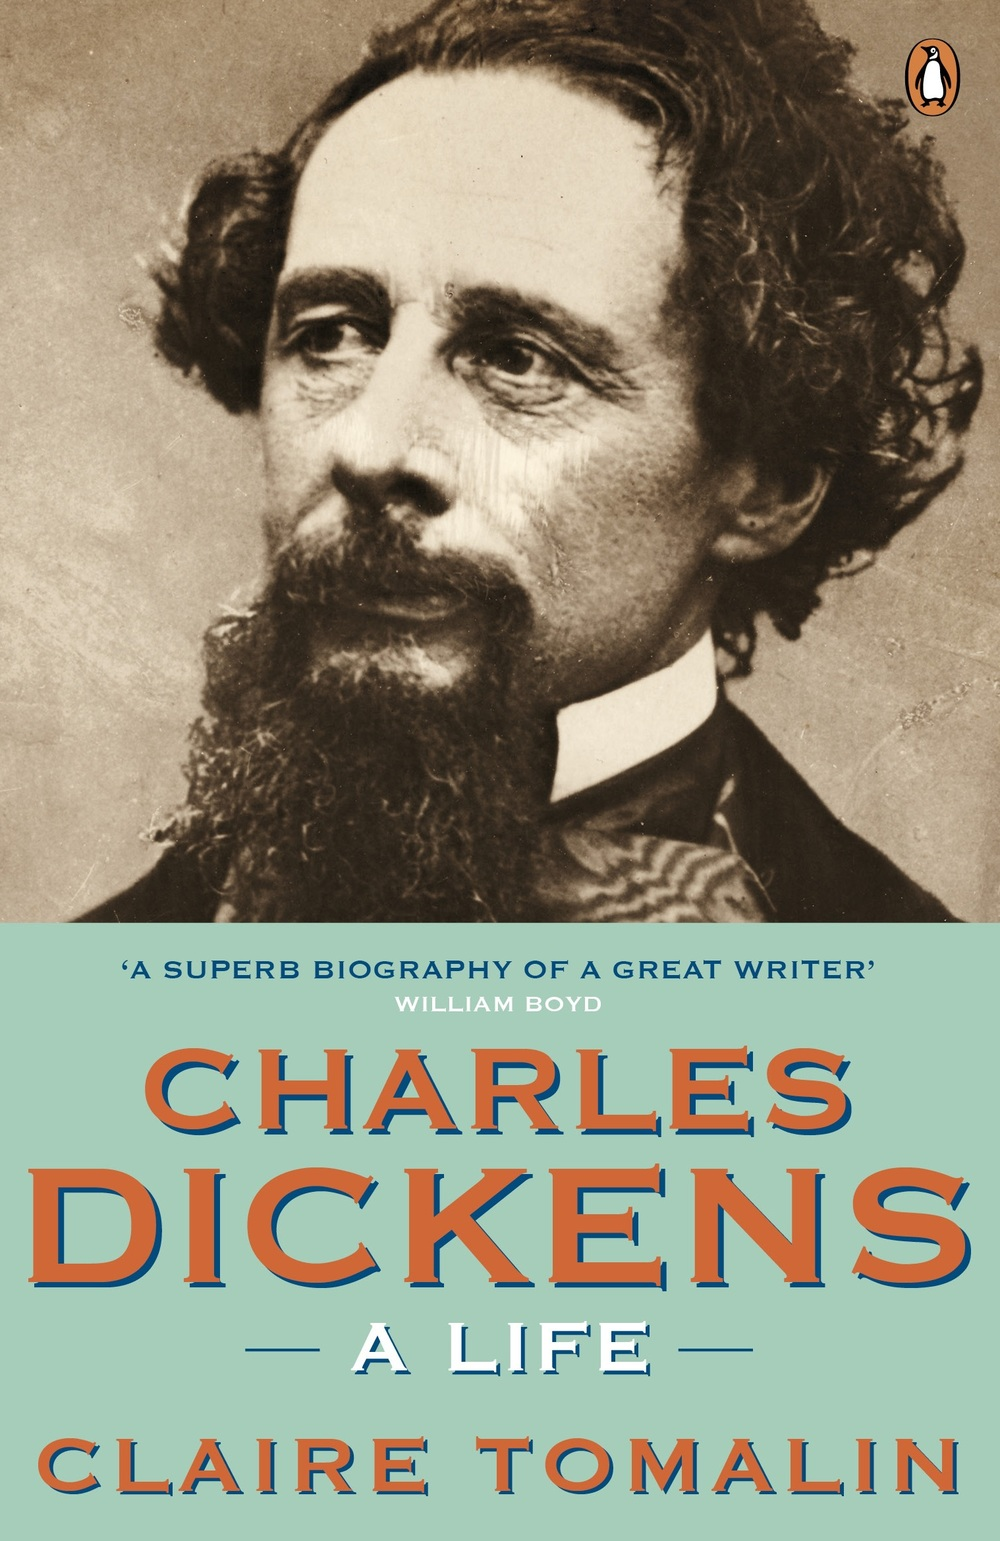 Charles Dickens: A Life